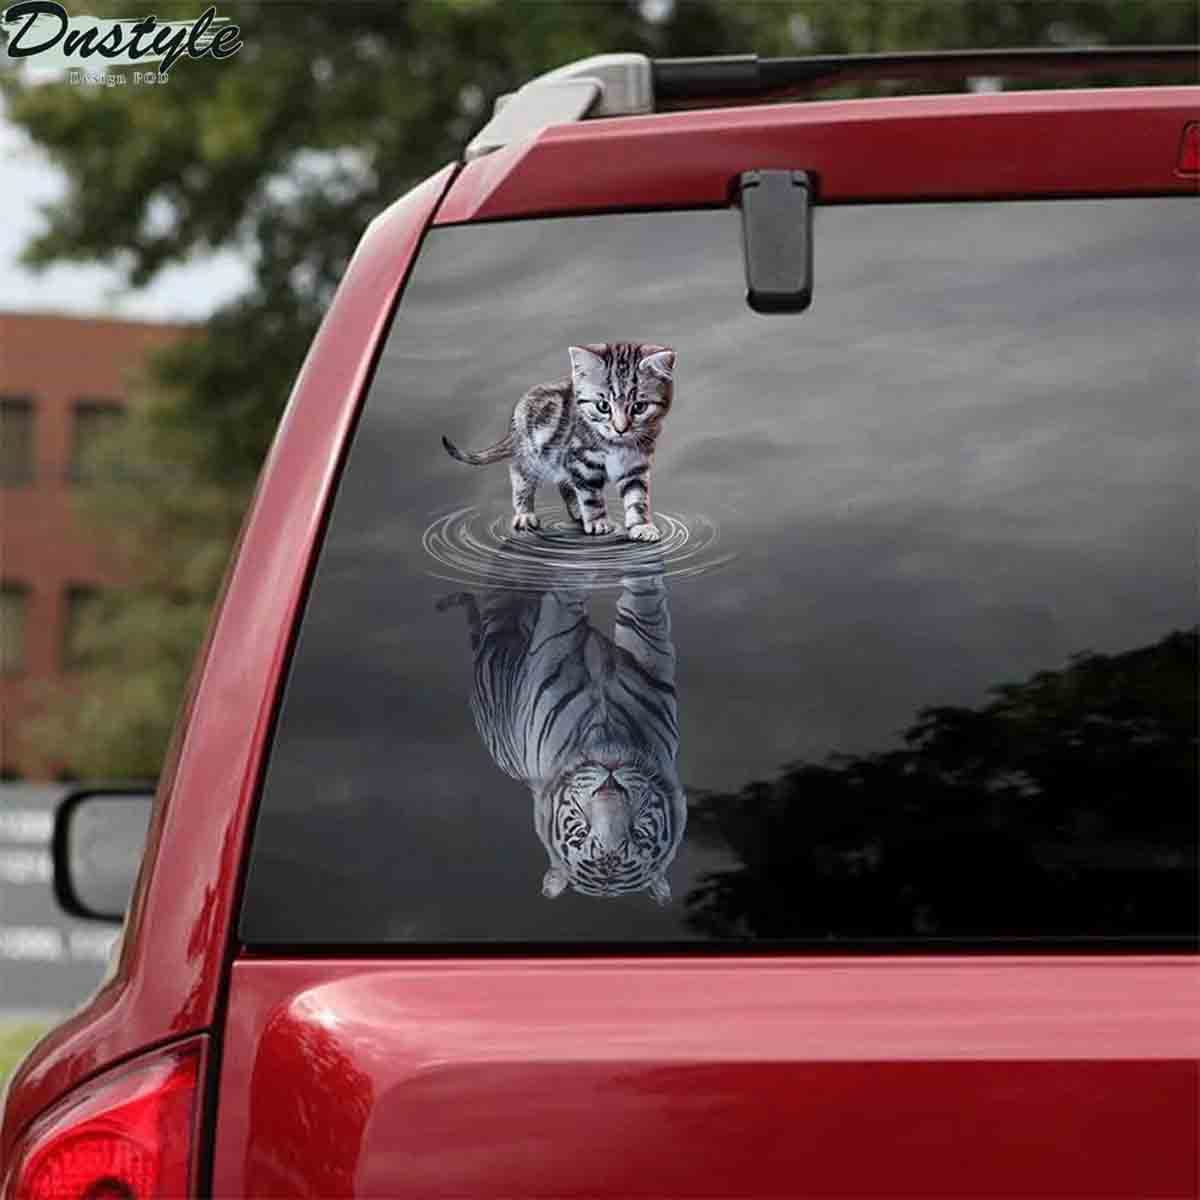 Cats tigers animal cute car decal sticker 1